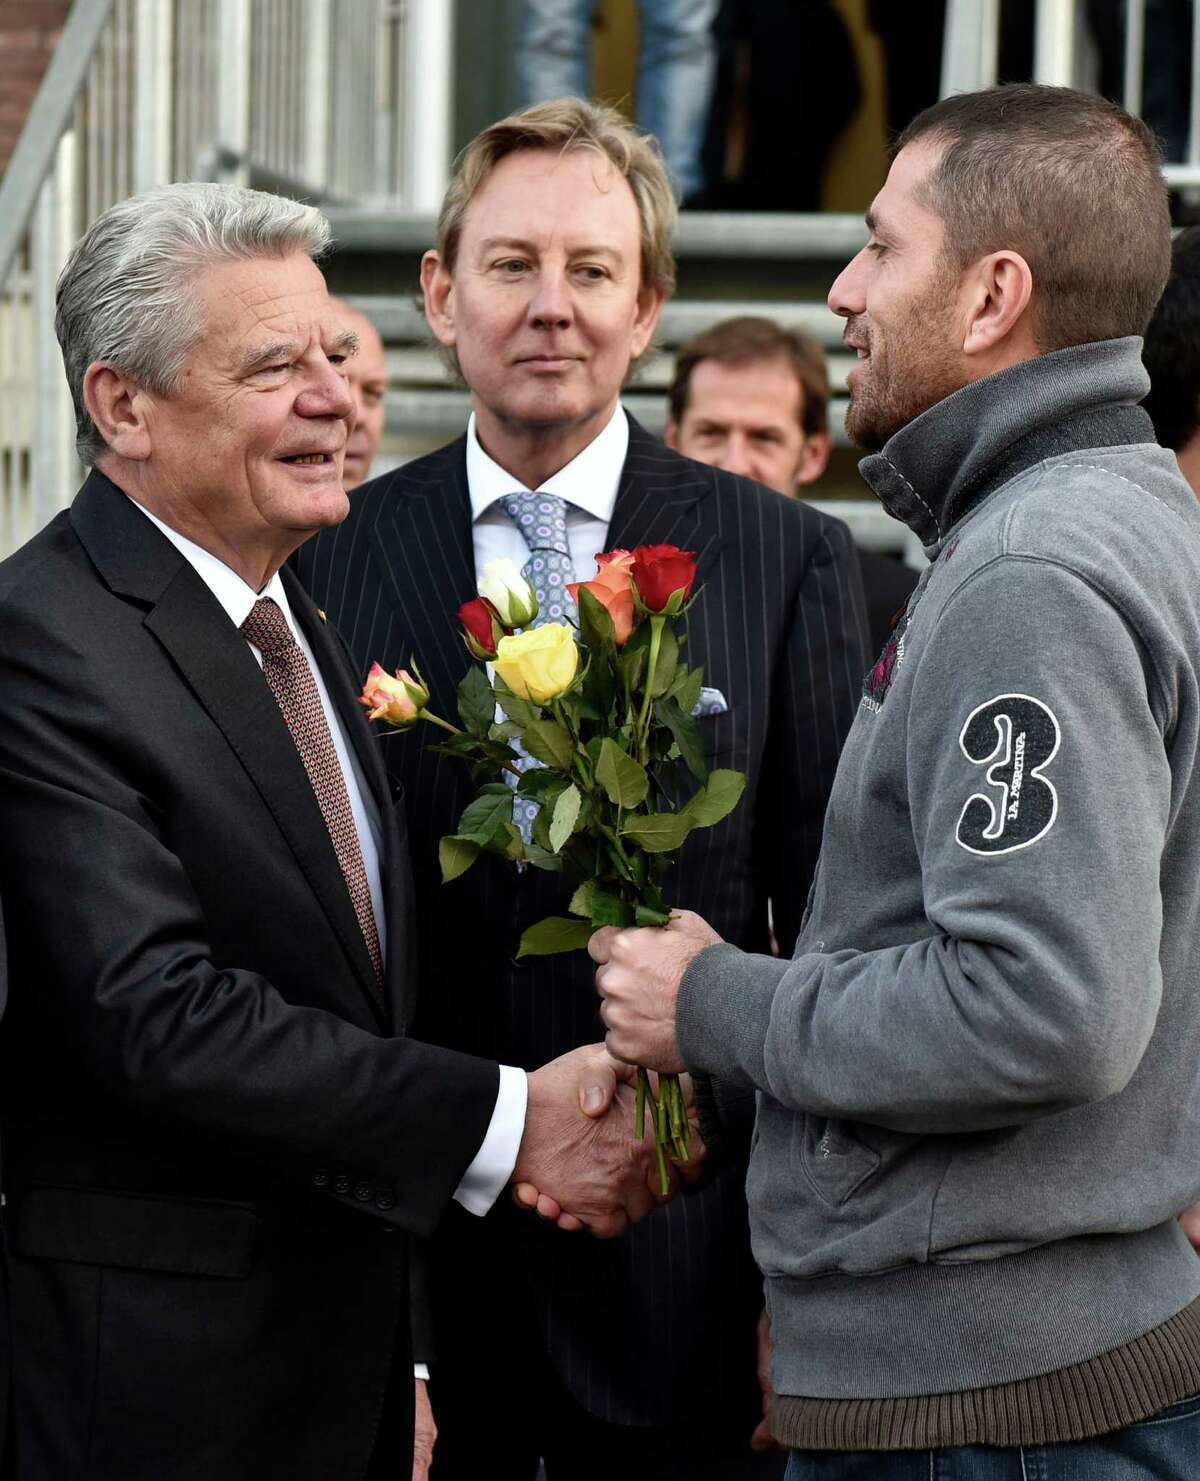 German president Joachim Gauck, left, receives flowers from a migrant during his visit of a migrant shelter in Bergisch Gladbach, western Germany, Thursday, Nov. 12, 2015. (AP Photo/Martin Meissner) ORG XMIT: MME101